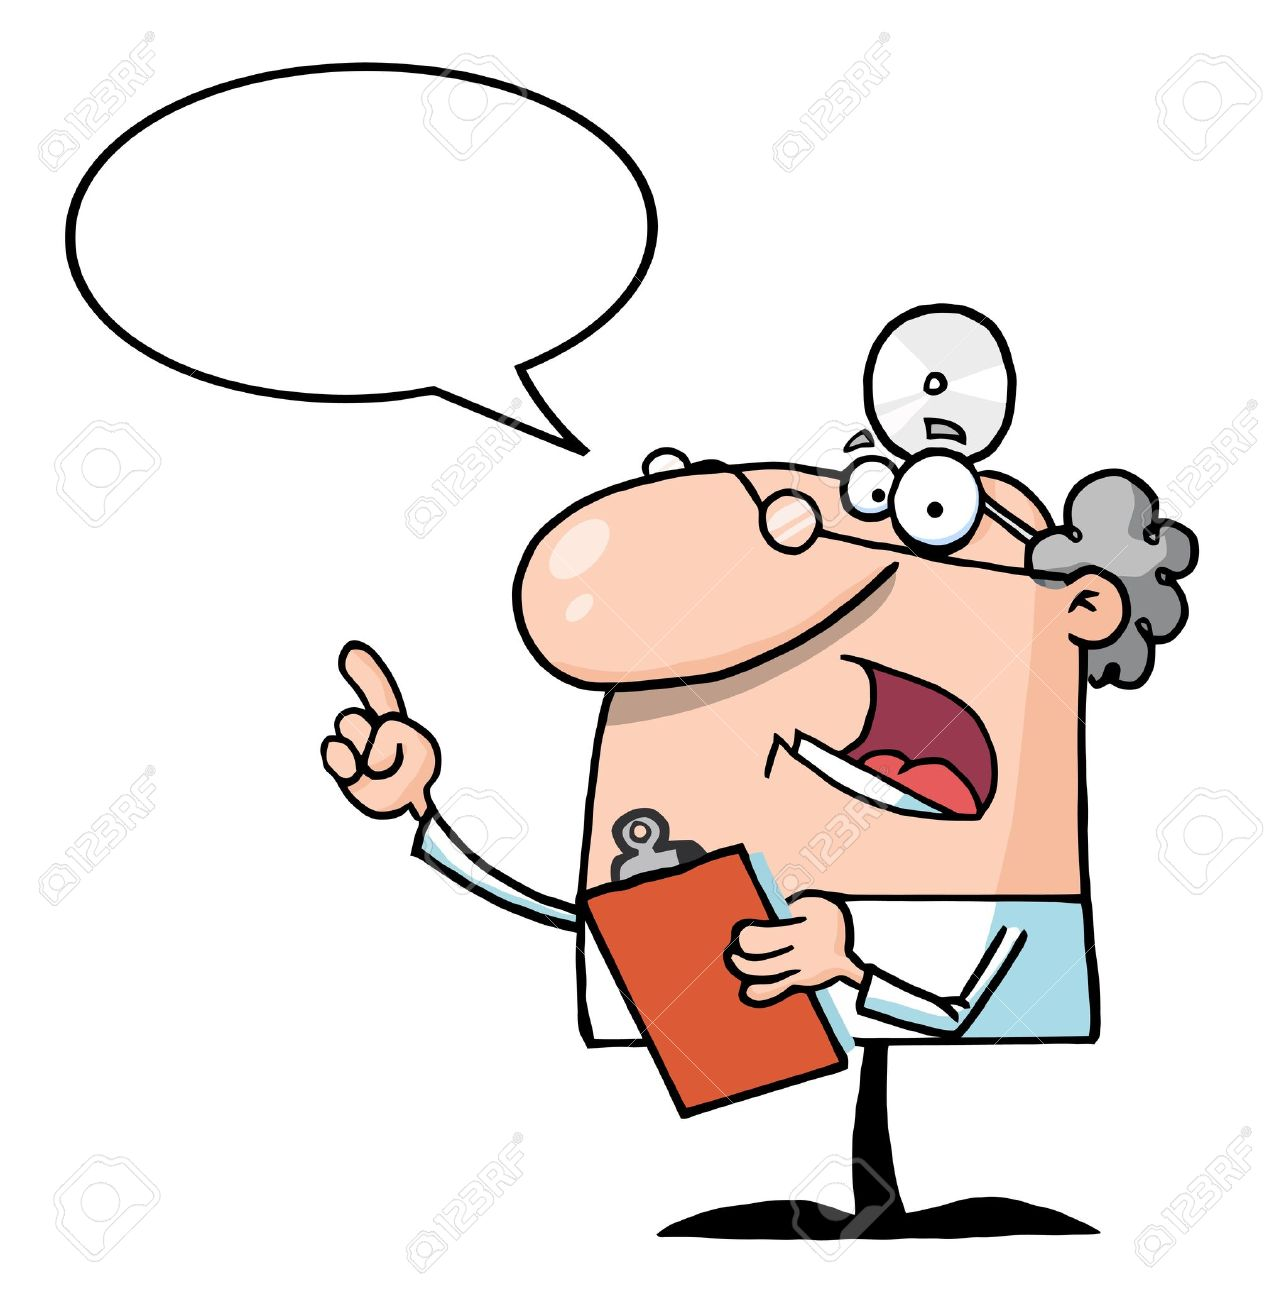 Doctor Holding A Clipboard With Speech Bubble - 8284477